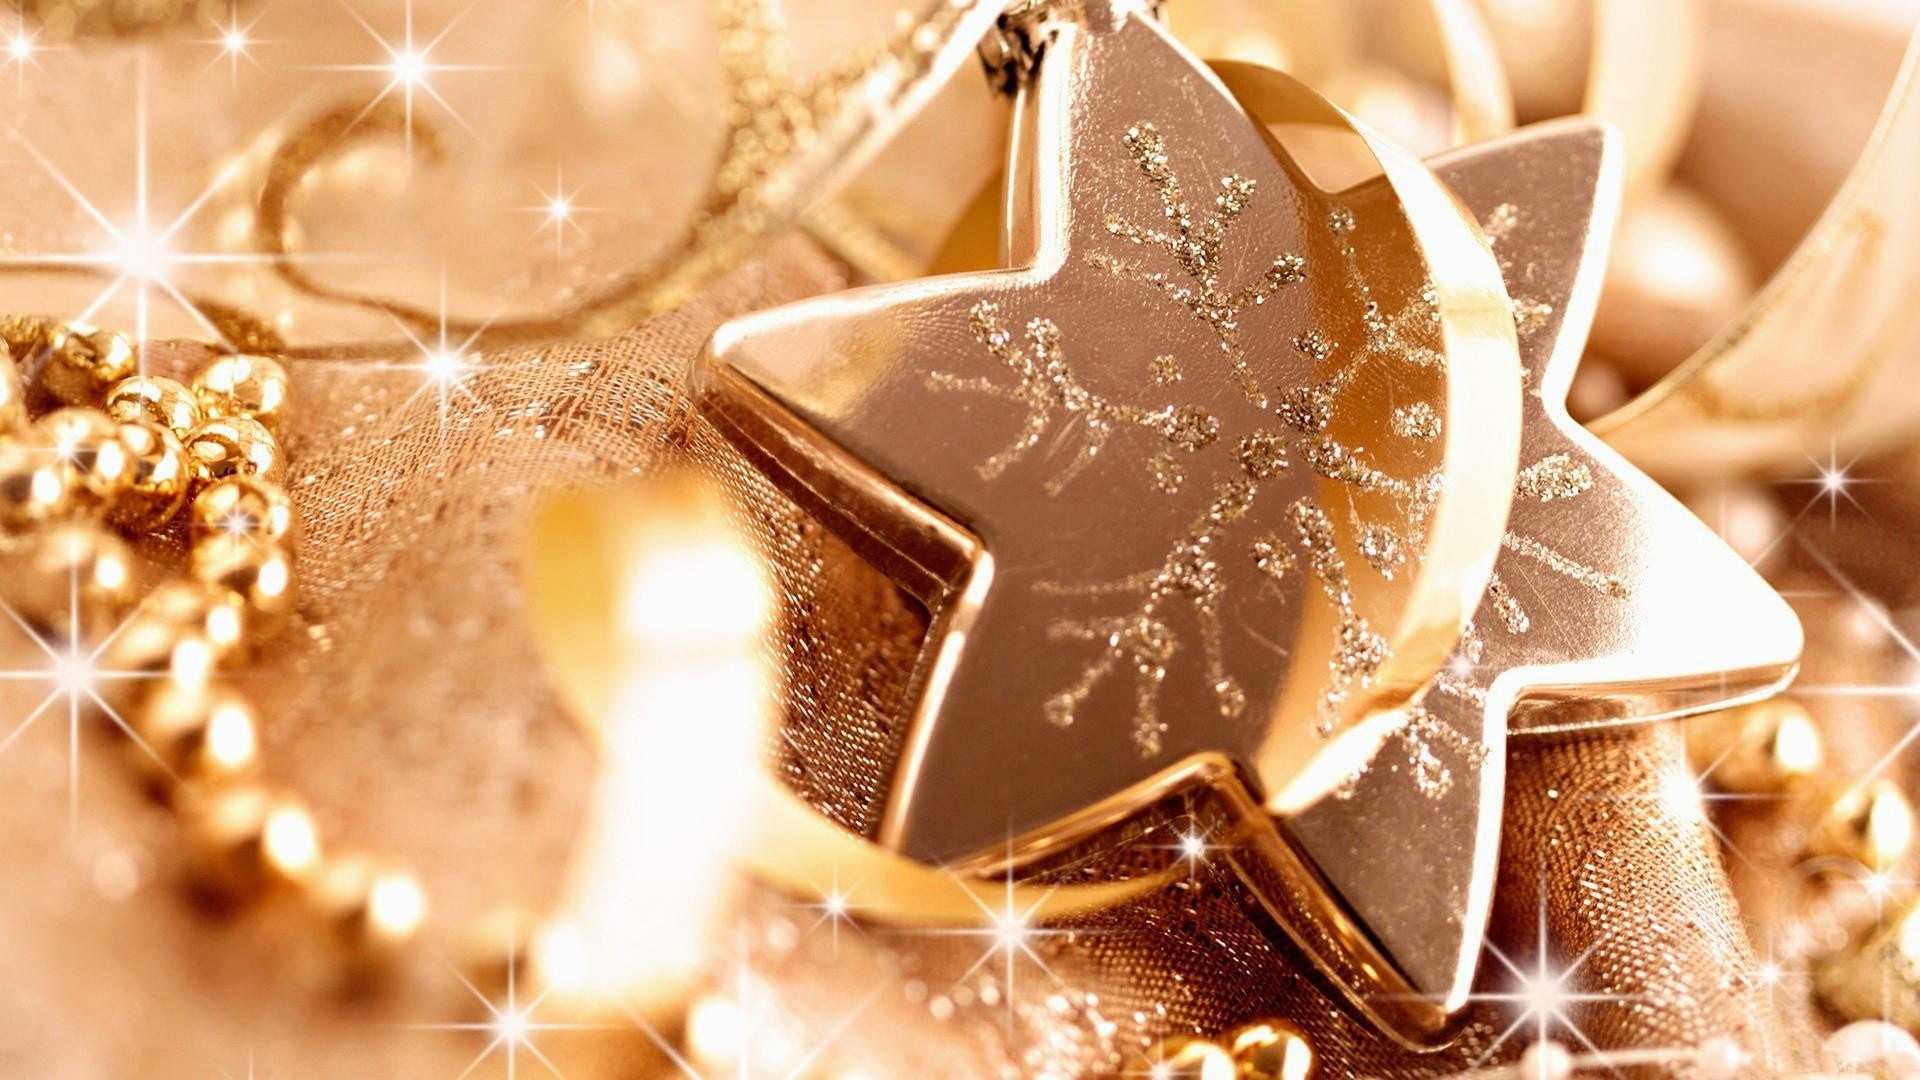 … hd wallpaper pictures; free christmas wallpaper for android phone …